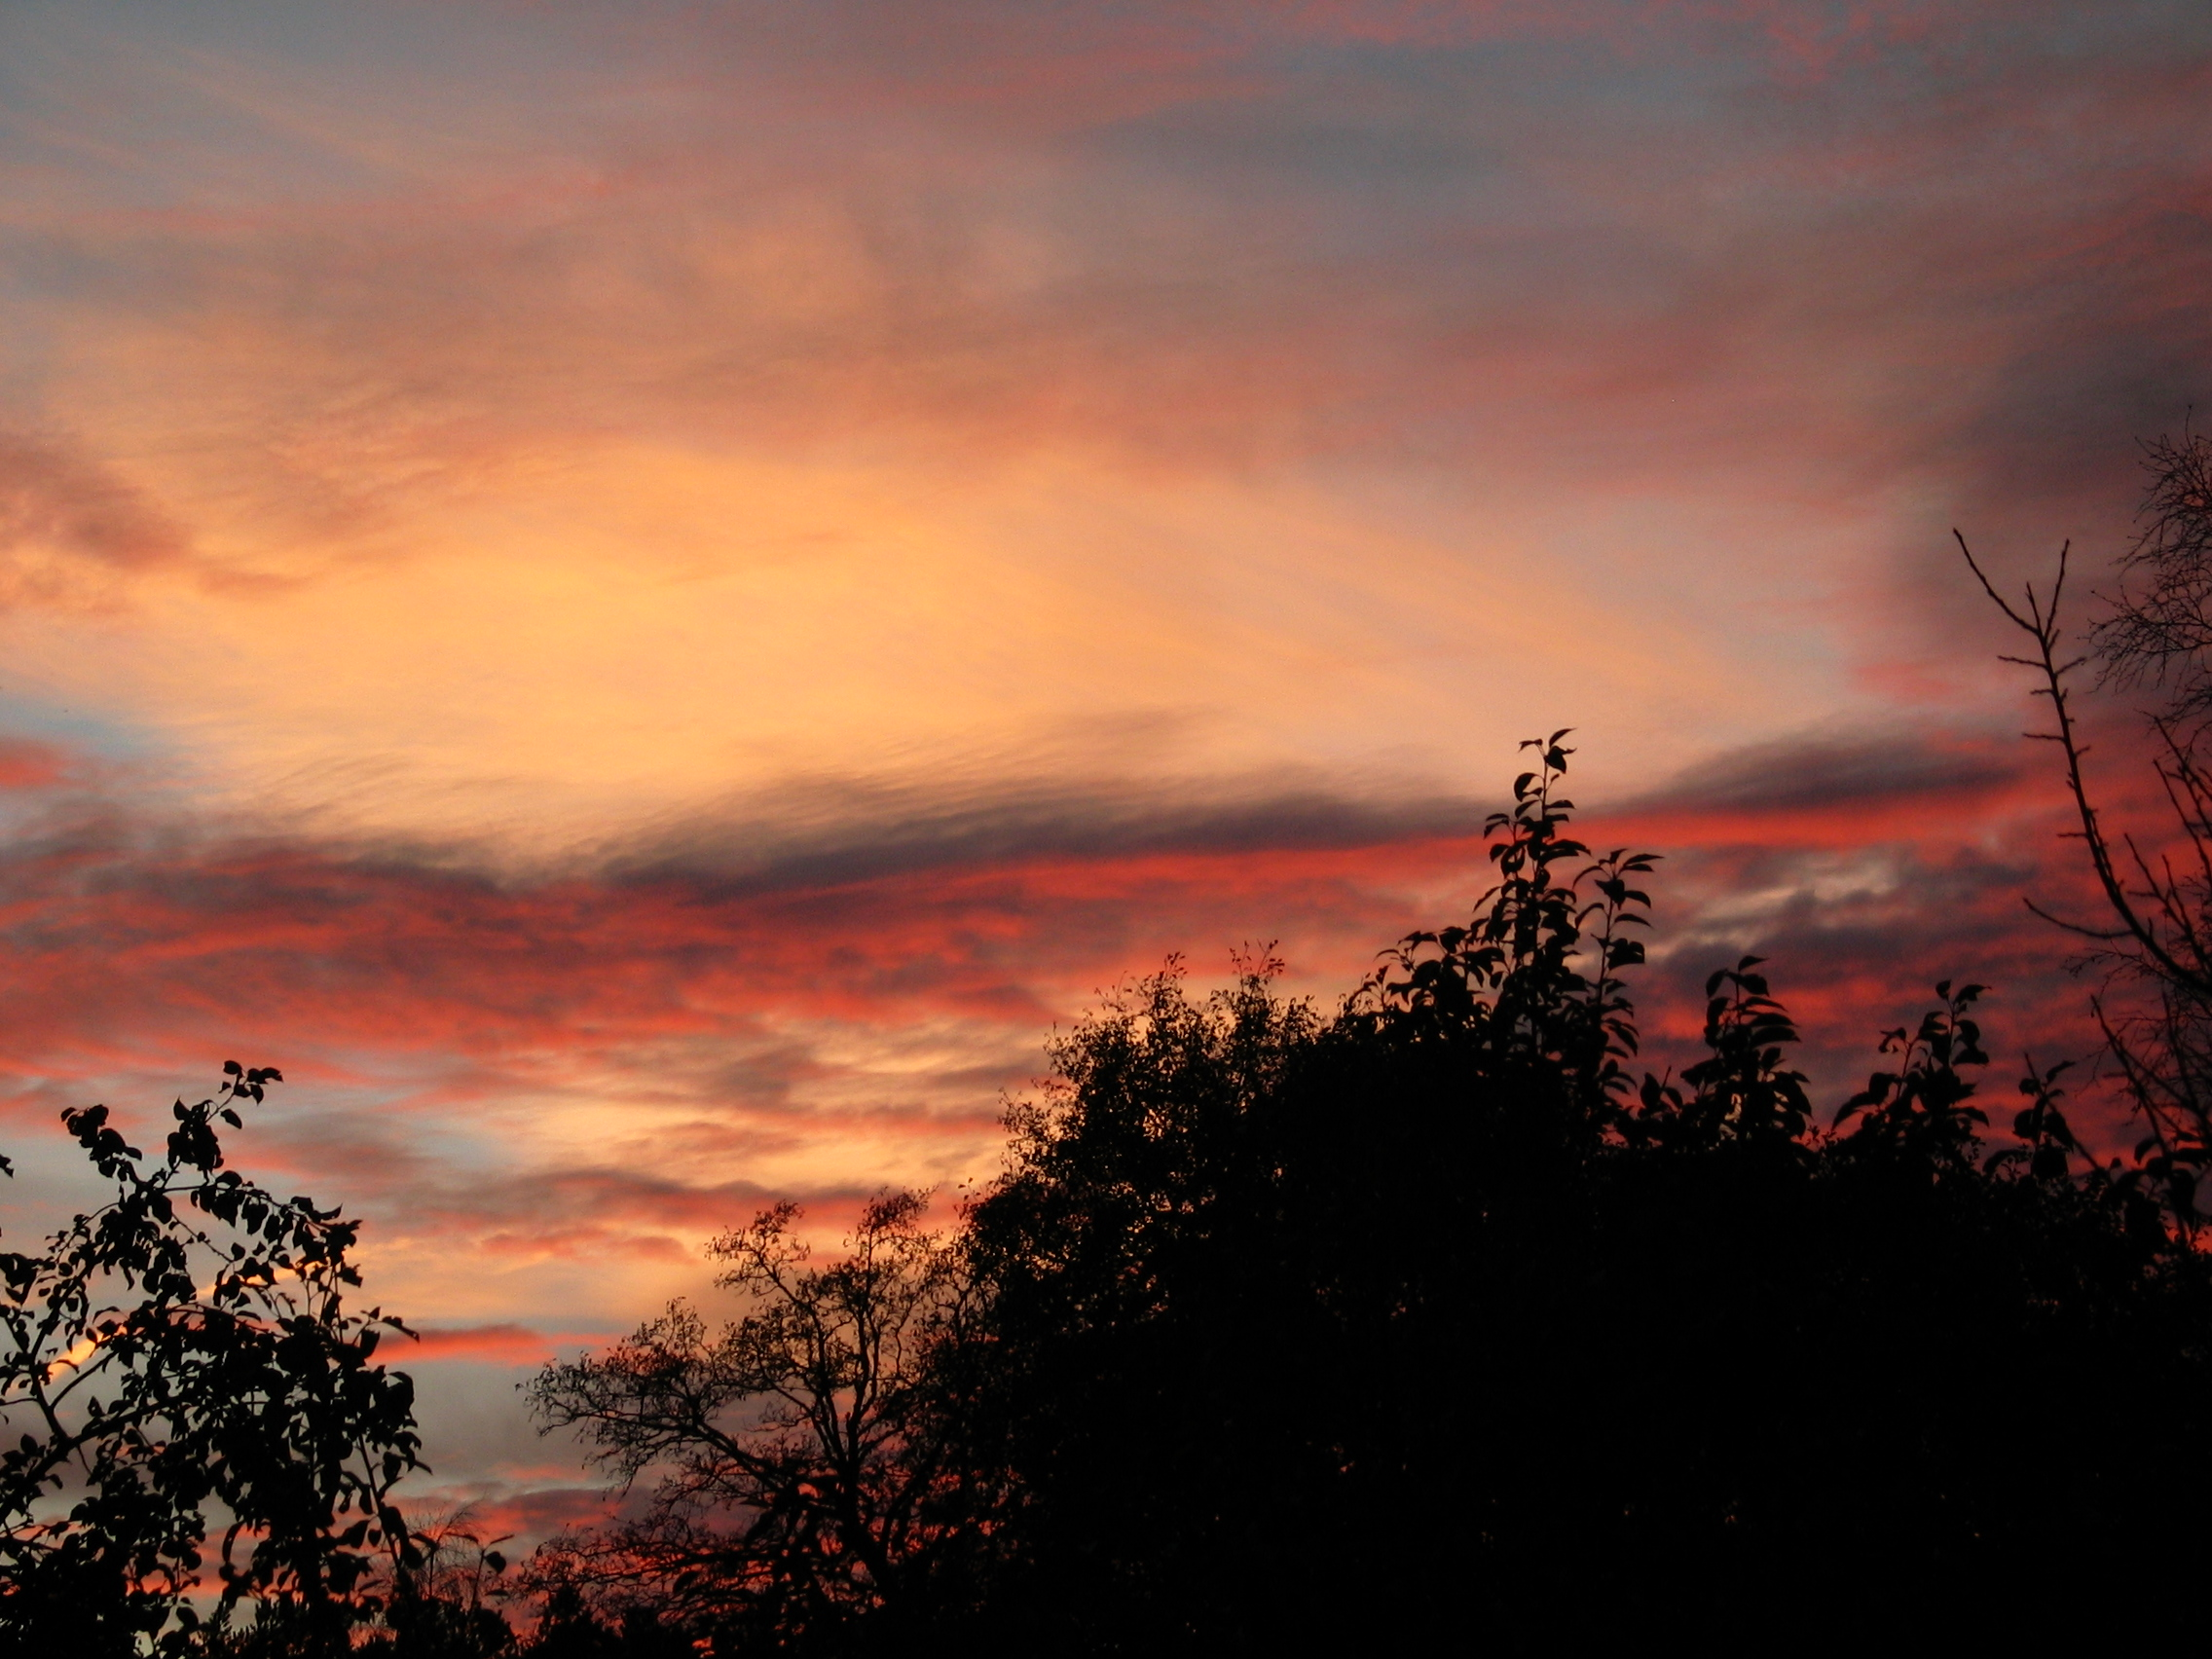 An autumn sky at sunset with treetops in the foreground